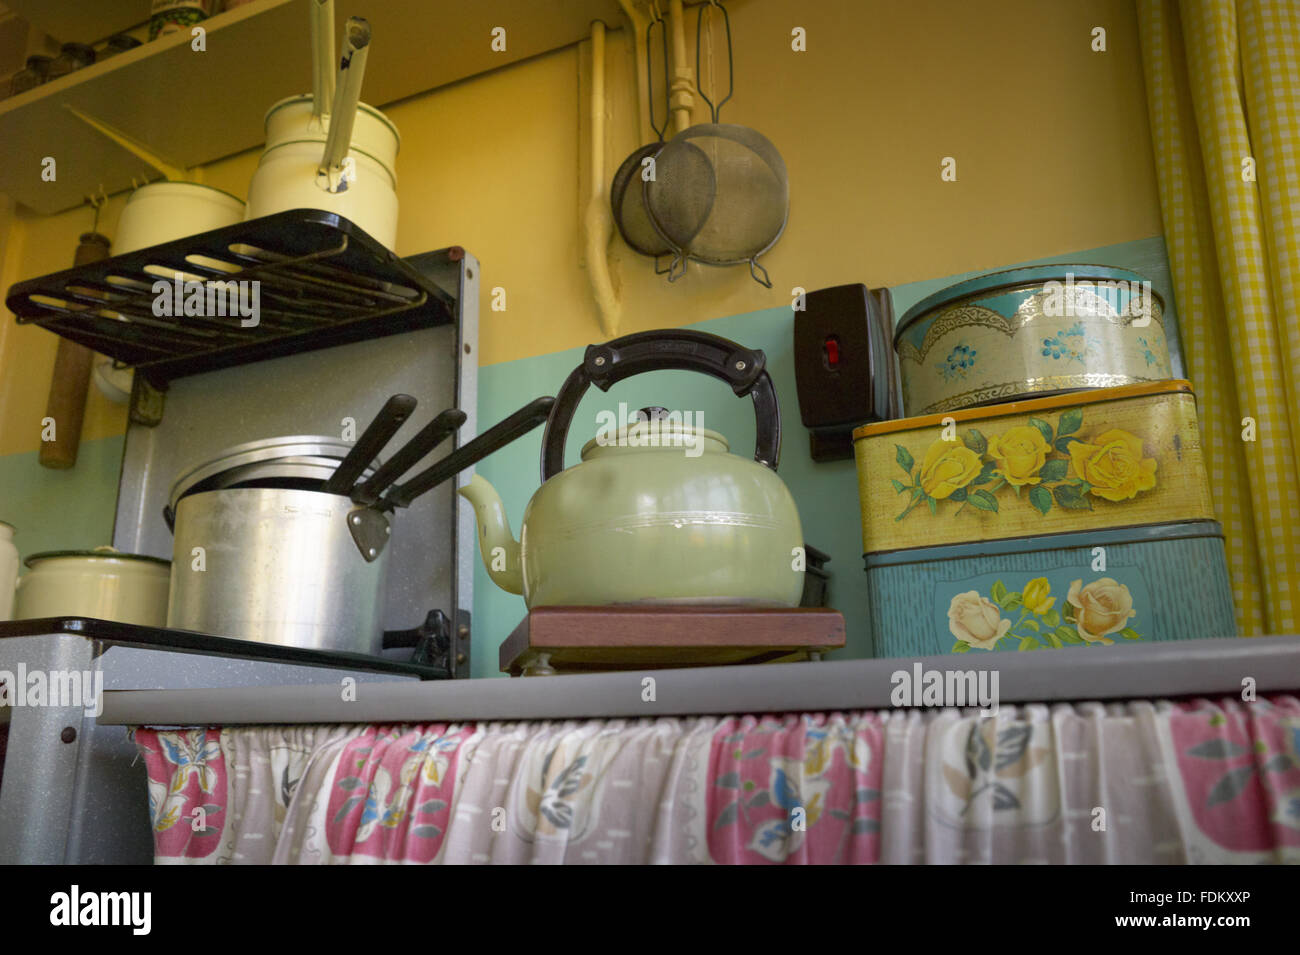 Kettle And Tins In The Kitchen At Mendips The Childhood Home Of John Stock Photo Alamy